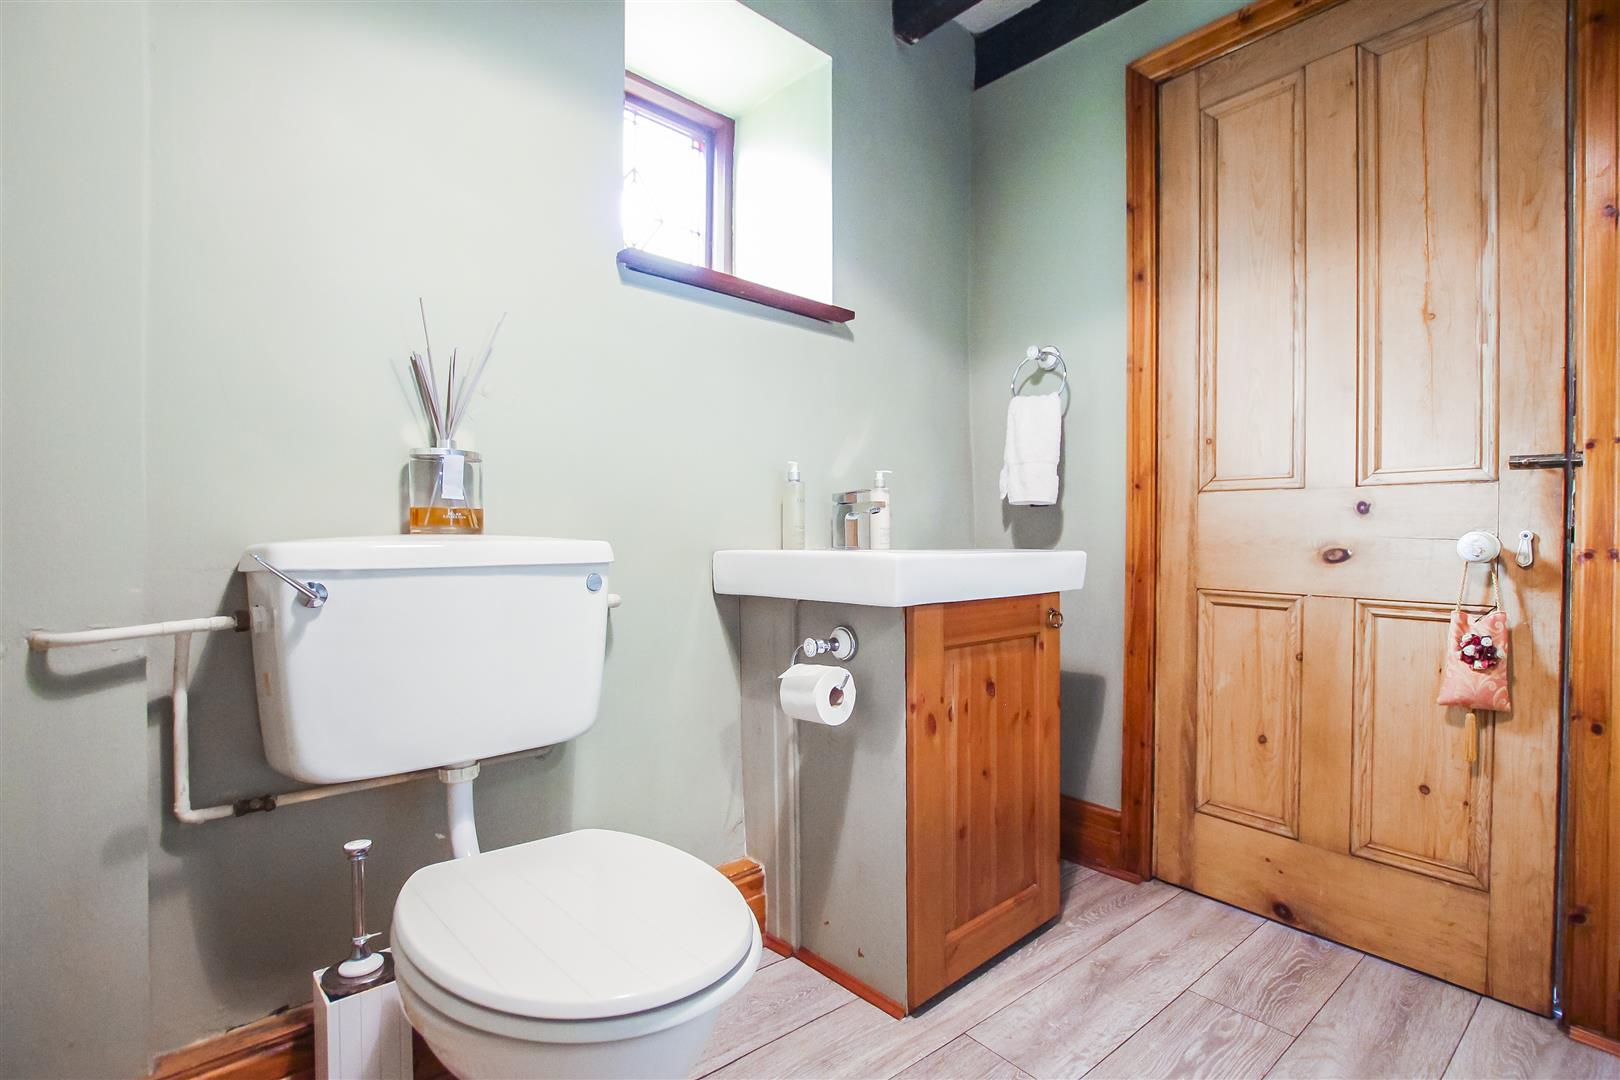 5 Bedroom Barn Conversion For Sale - Image 25